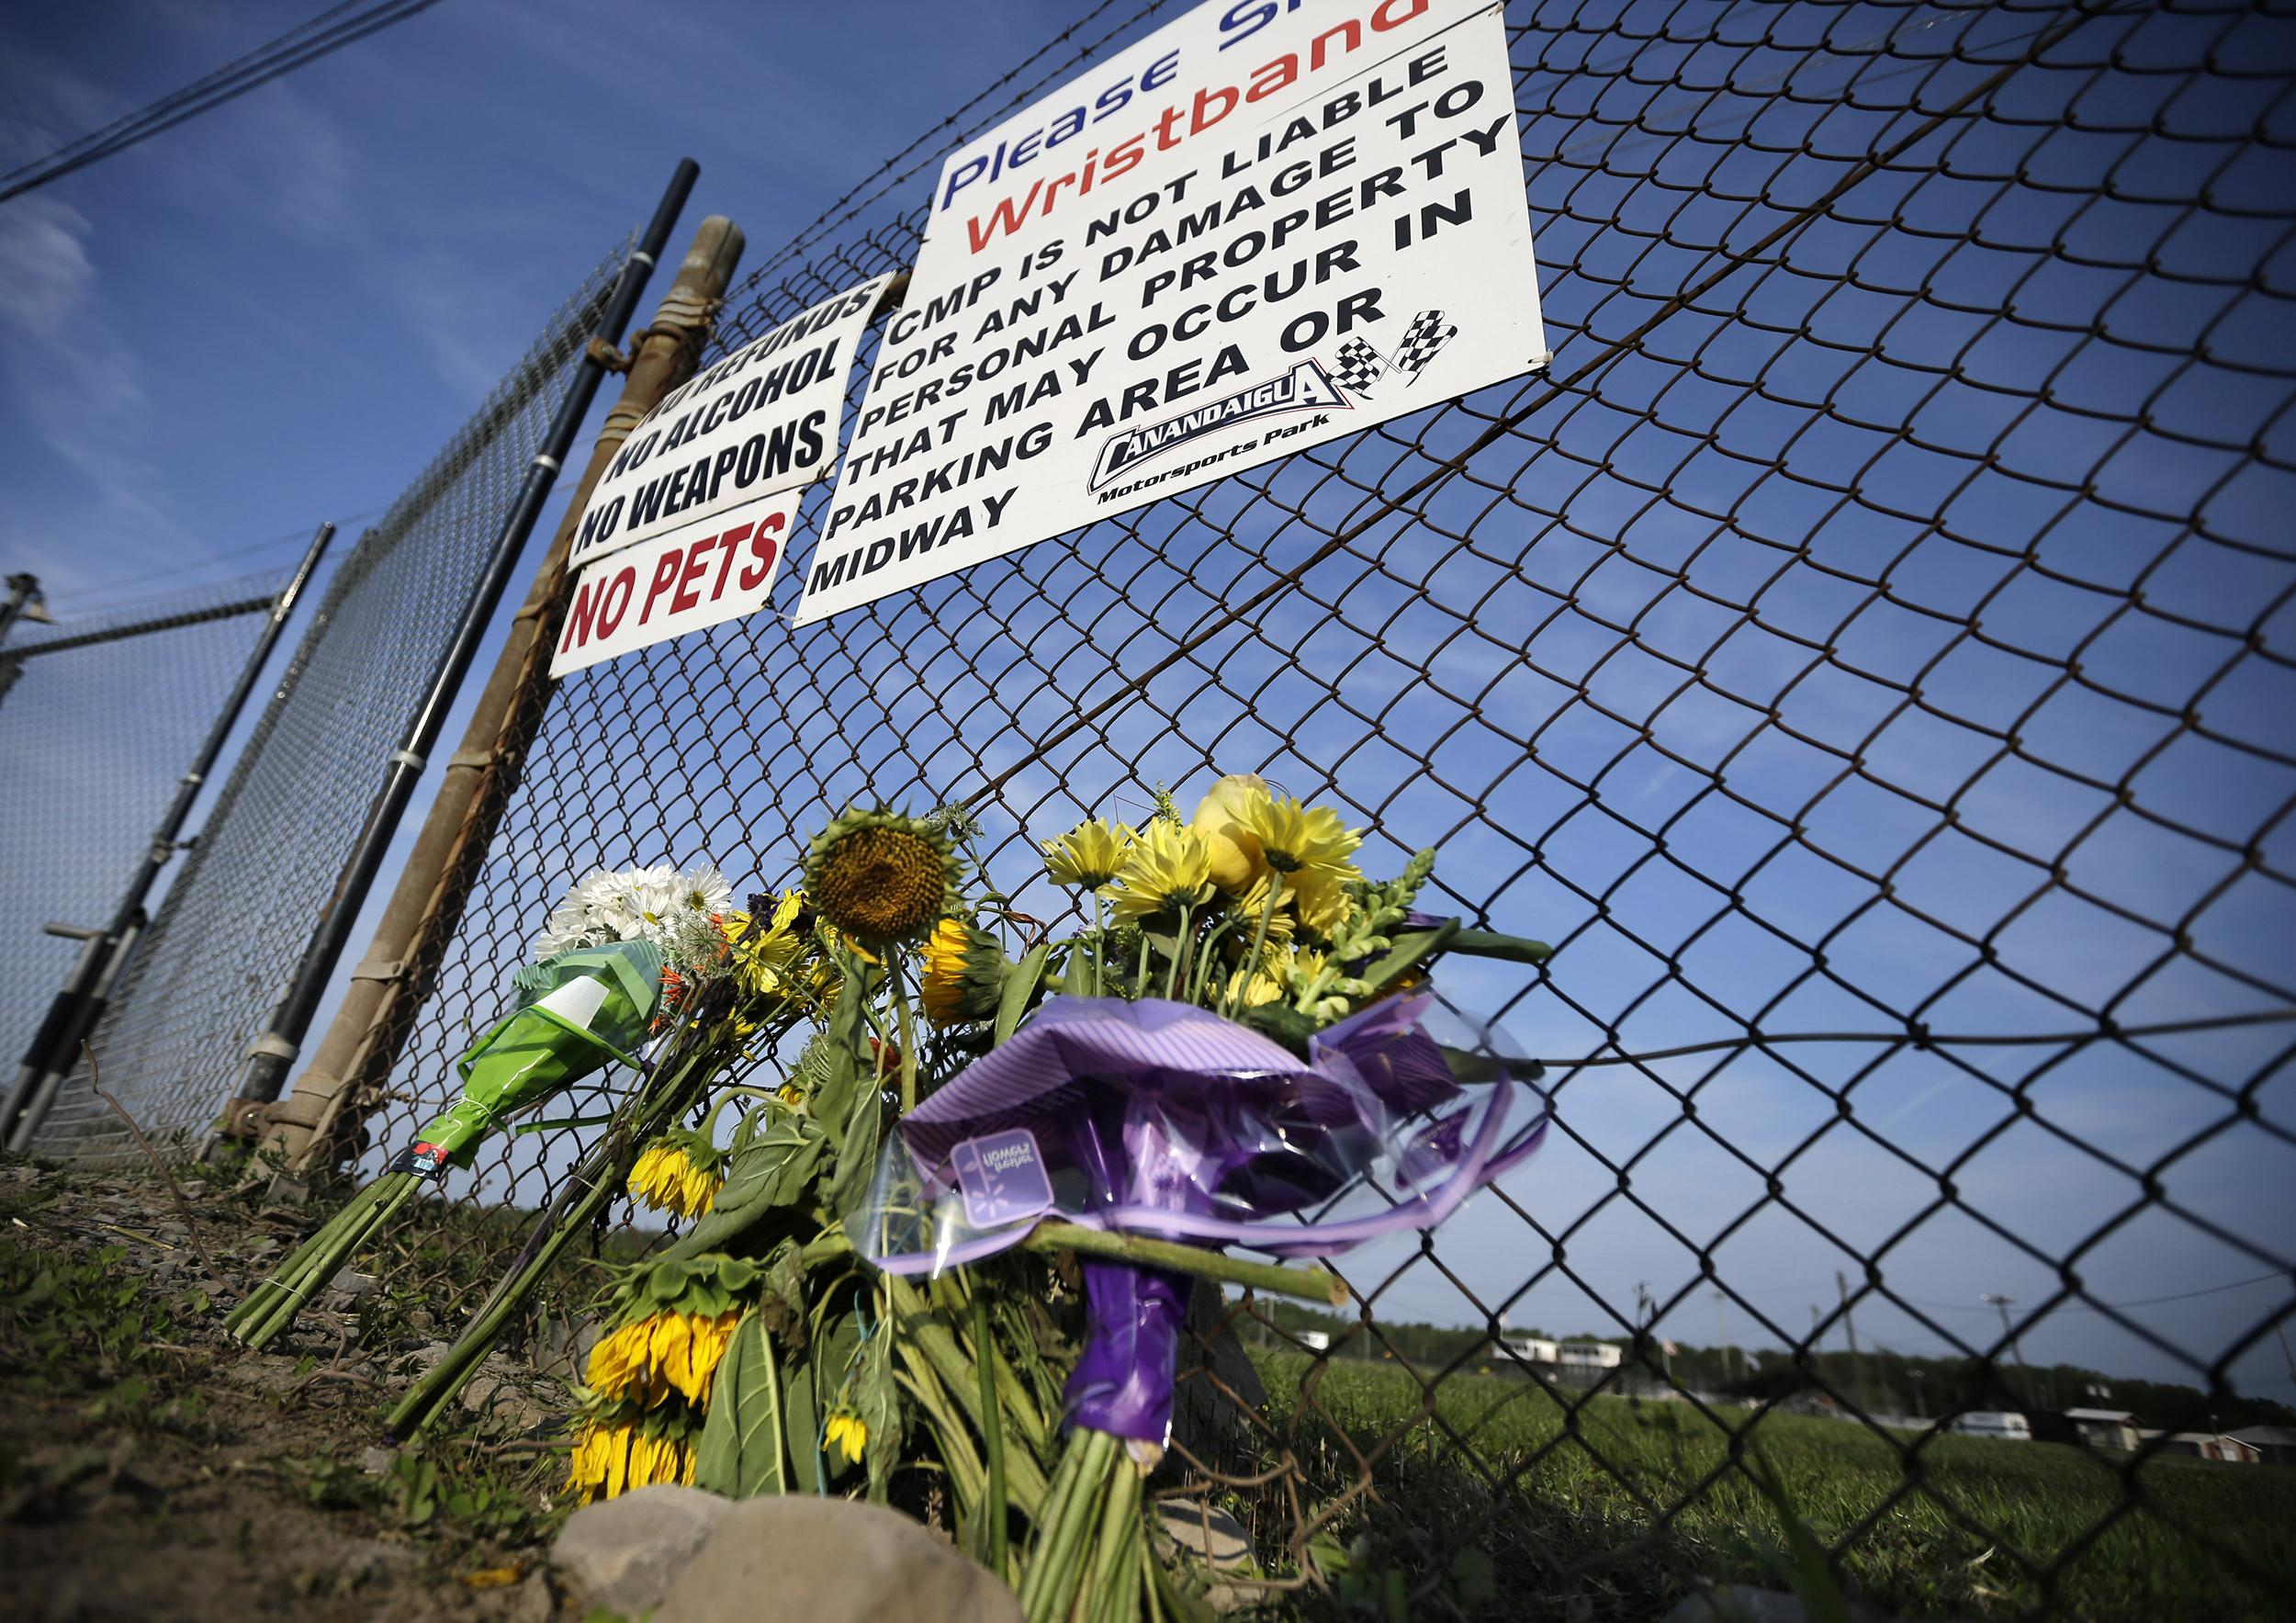 Image: A small memorial of flowers is seen at Canandaigua Motorsports Park on Aug. 11, in Canandaigua, N.Y.